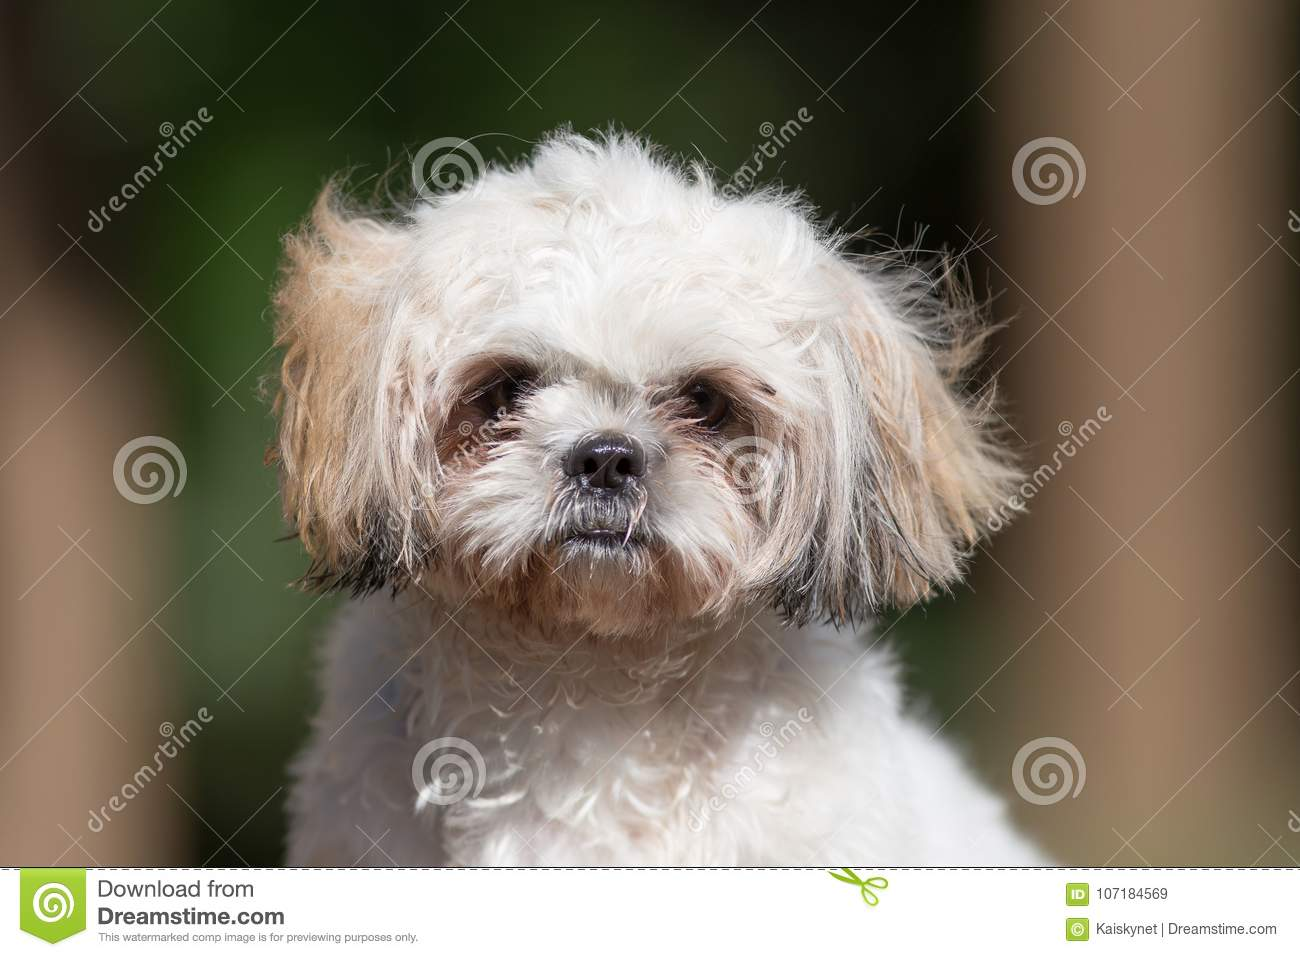 Funny Cute Shih Tzu Puppy Dog After Bath Stock Image Image Of Hygiene Brown 107184569